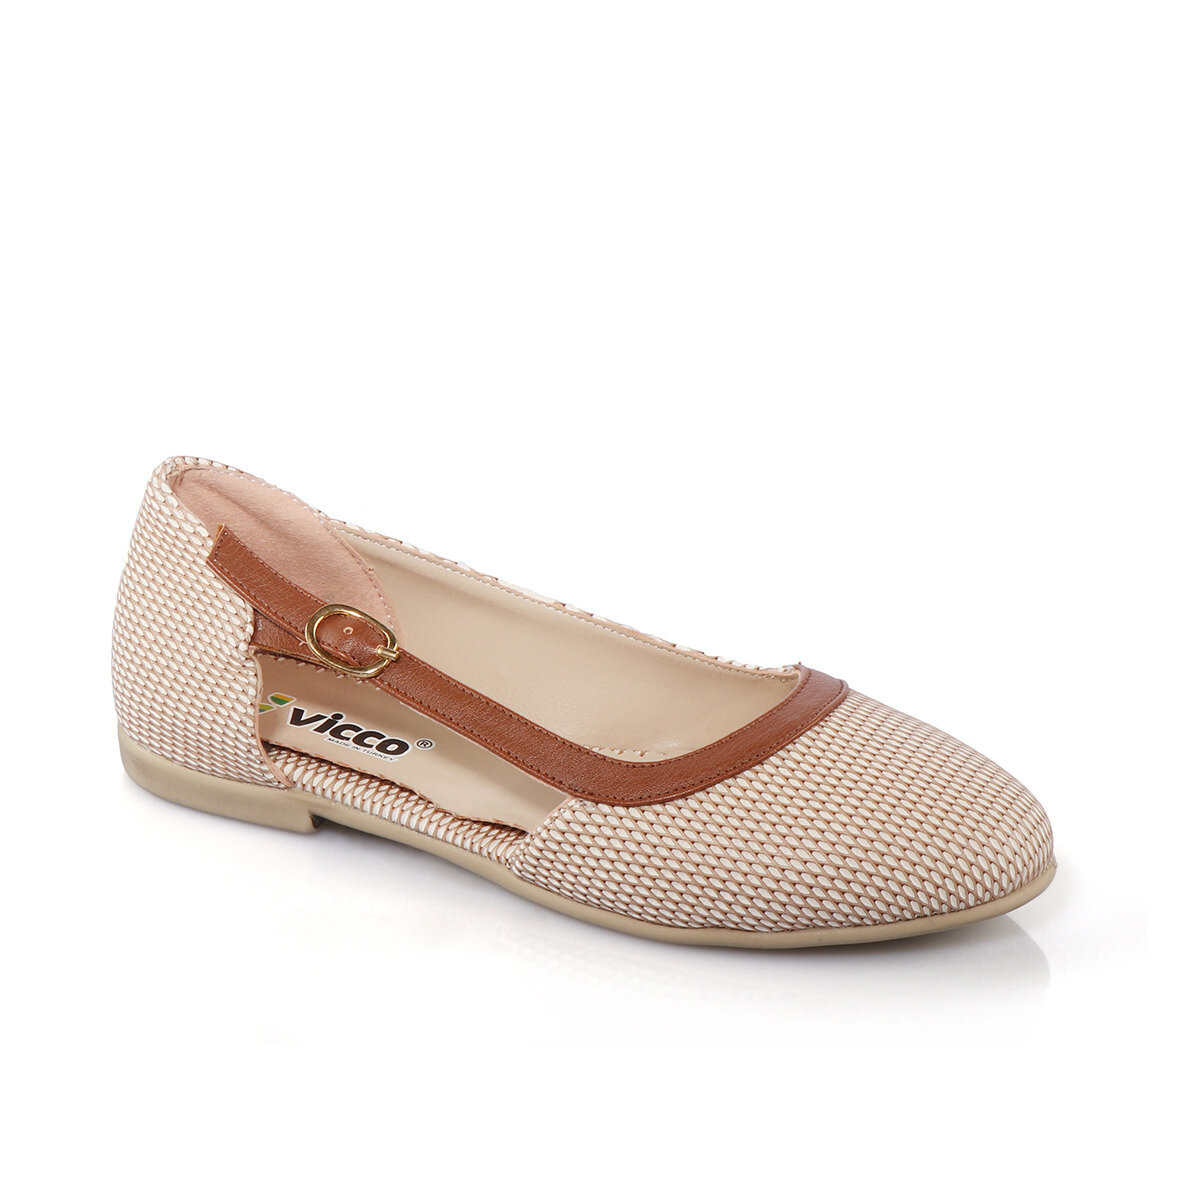 FLO 913.18Y. 492 FILET BALLERINA Sand Color Female Child Ballerina VICCO